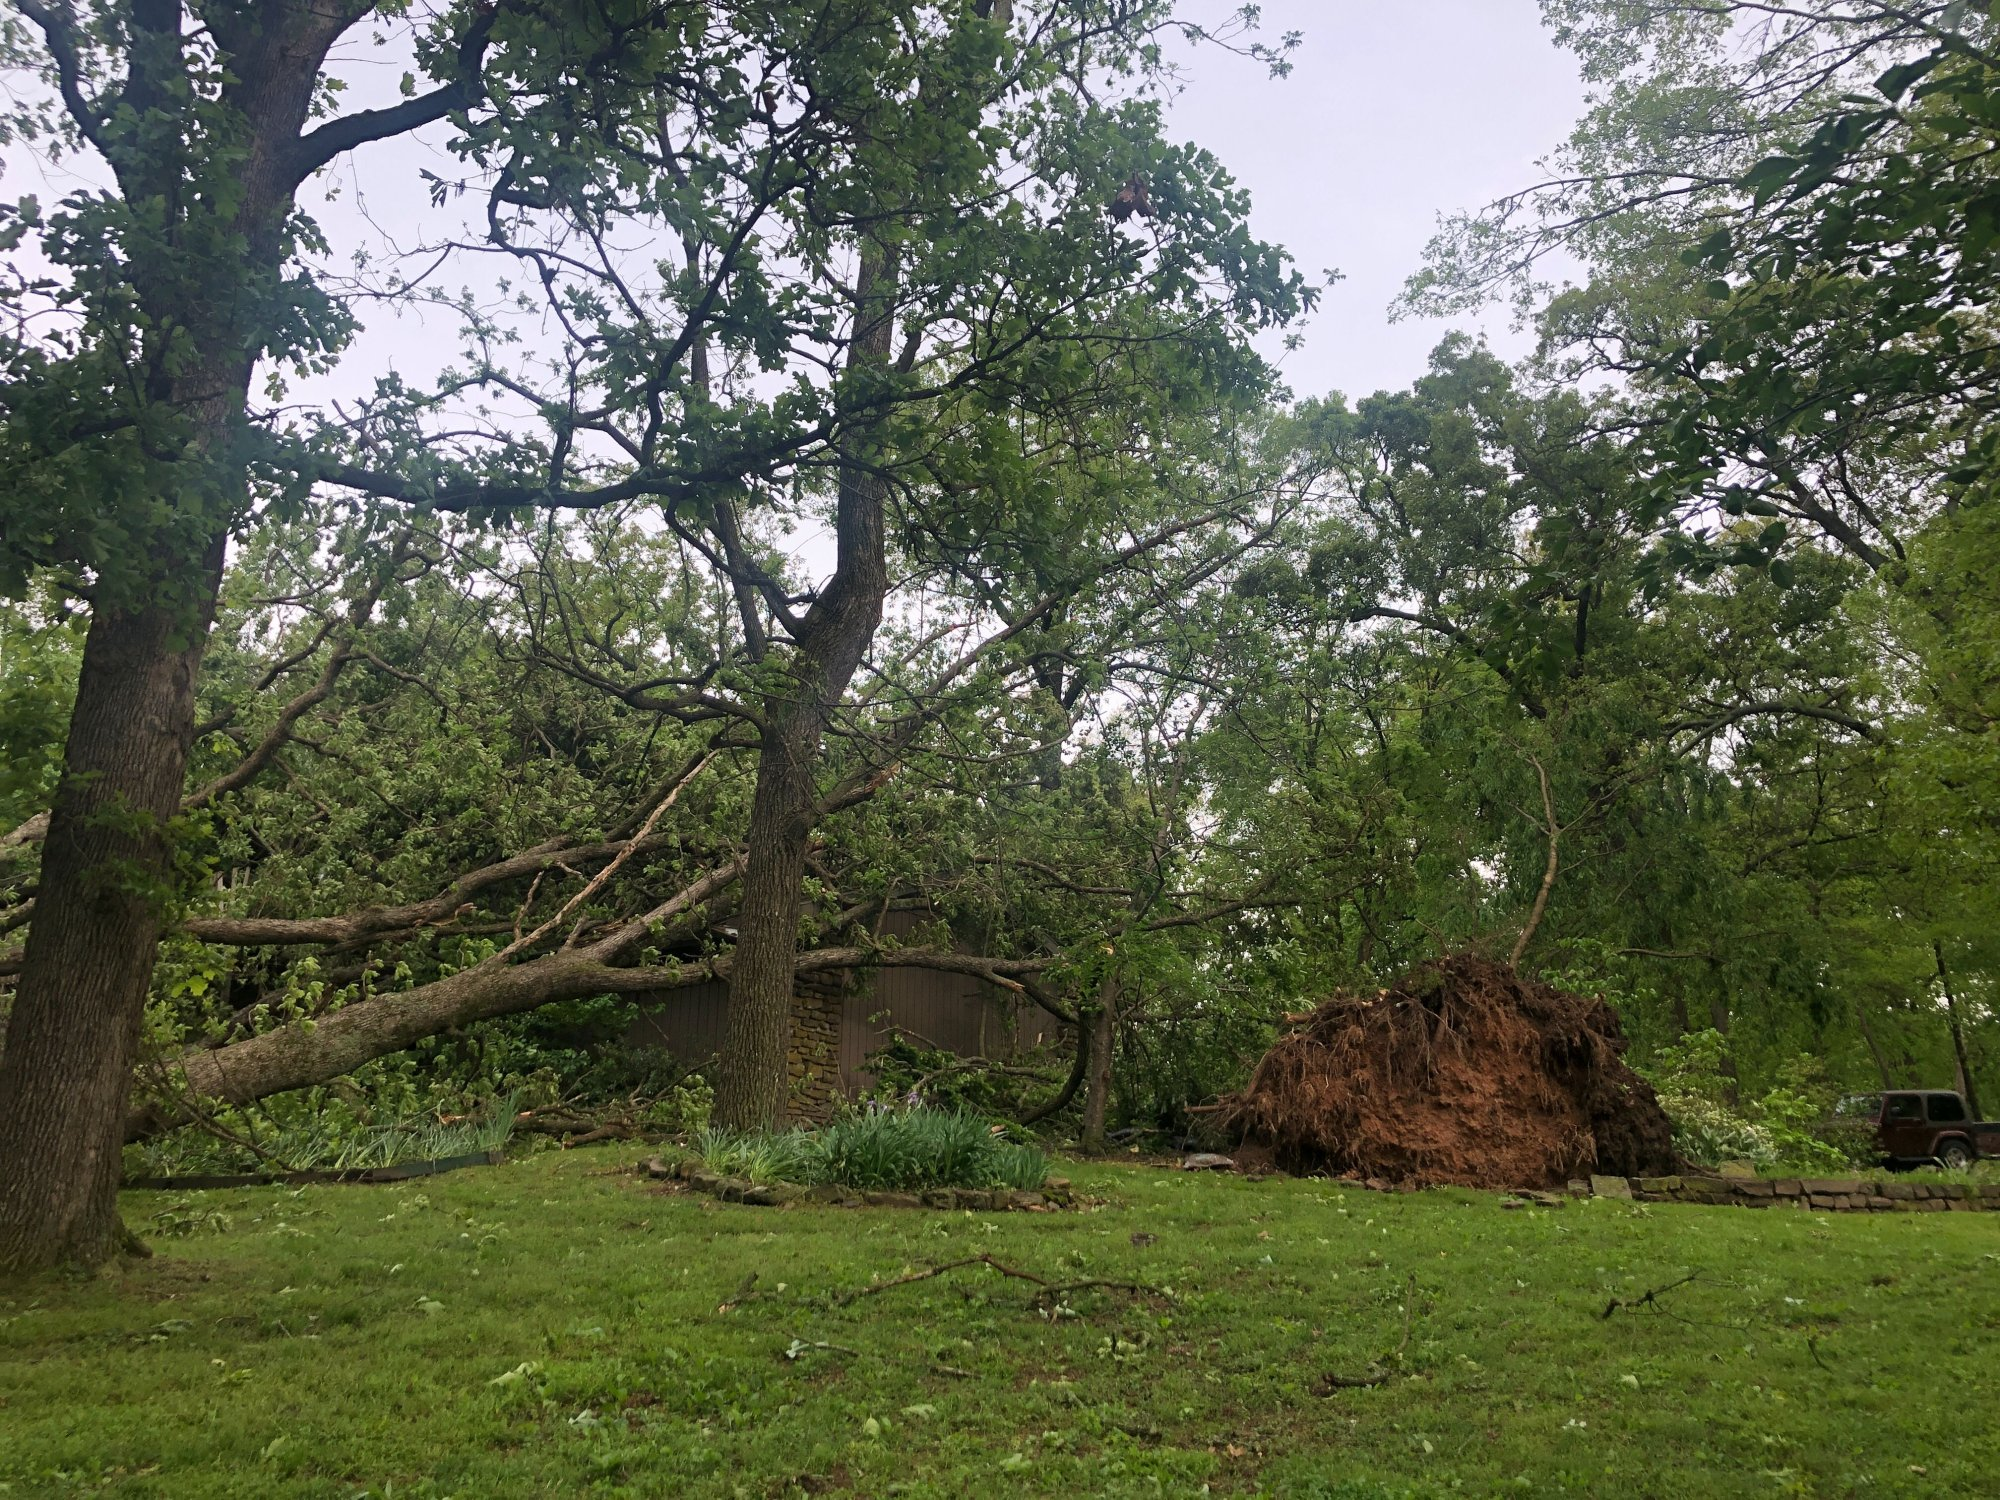 Trees damaged a home on Sunbridge Lane in Rogers after high winds blew through the area overnight May 2, 2019.